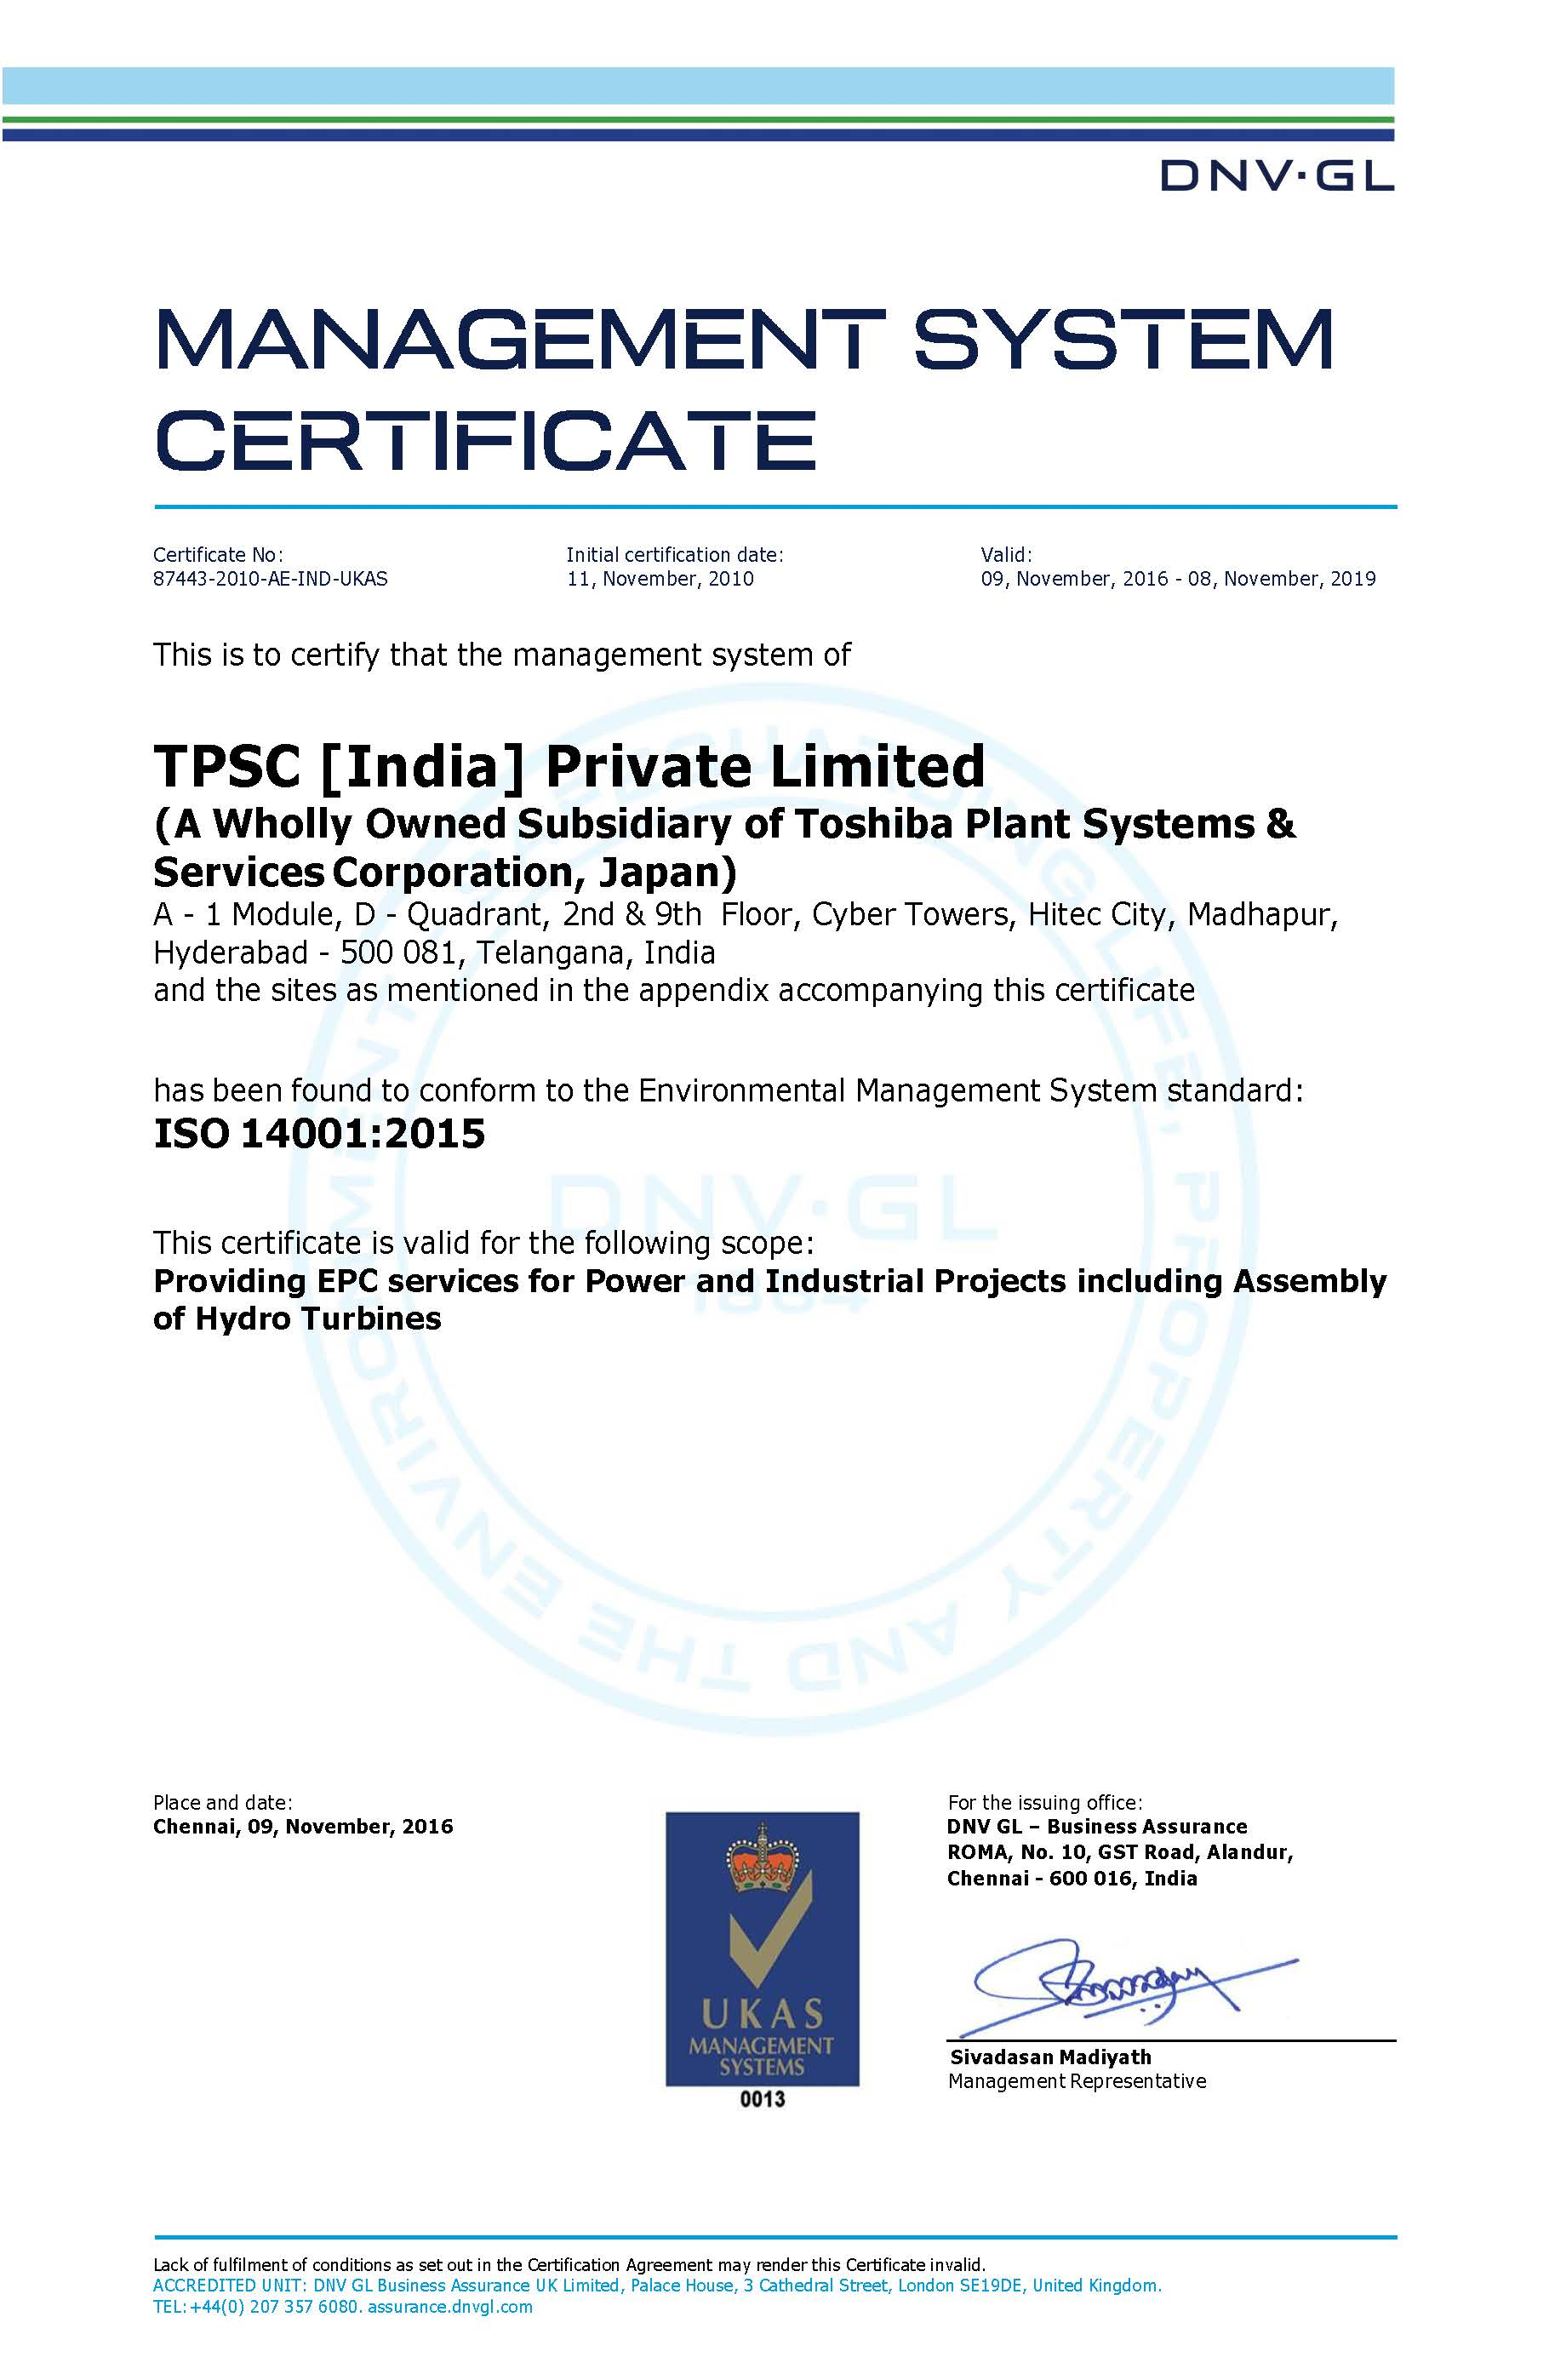 Our Policies: TPSC (India) Private Limited